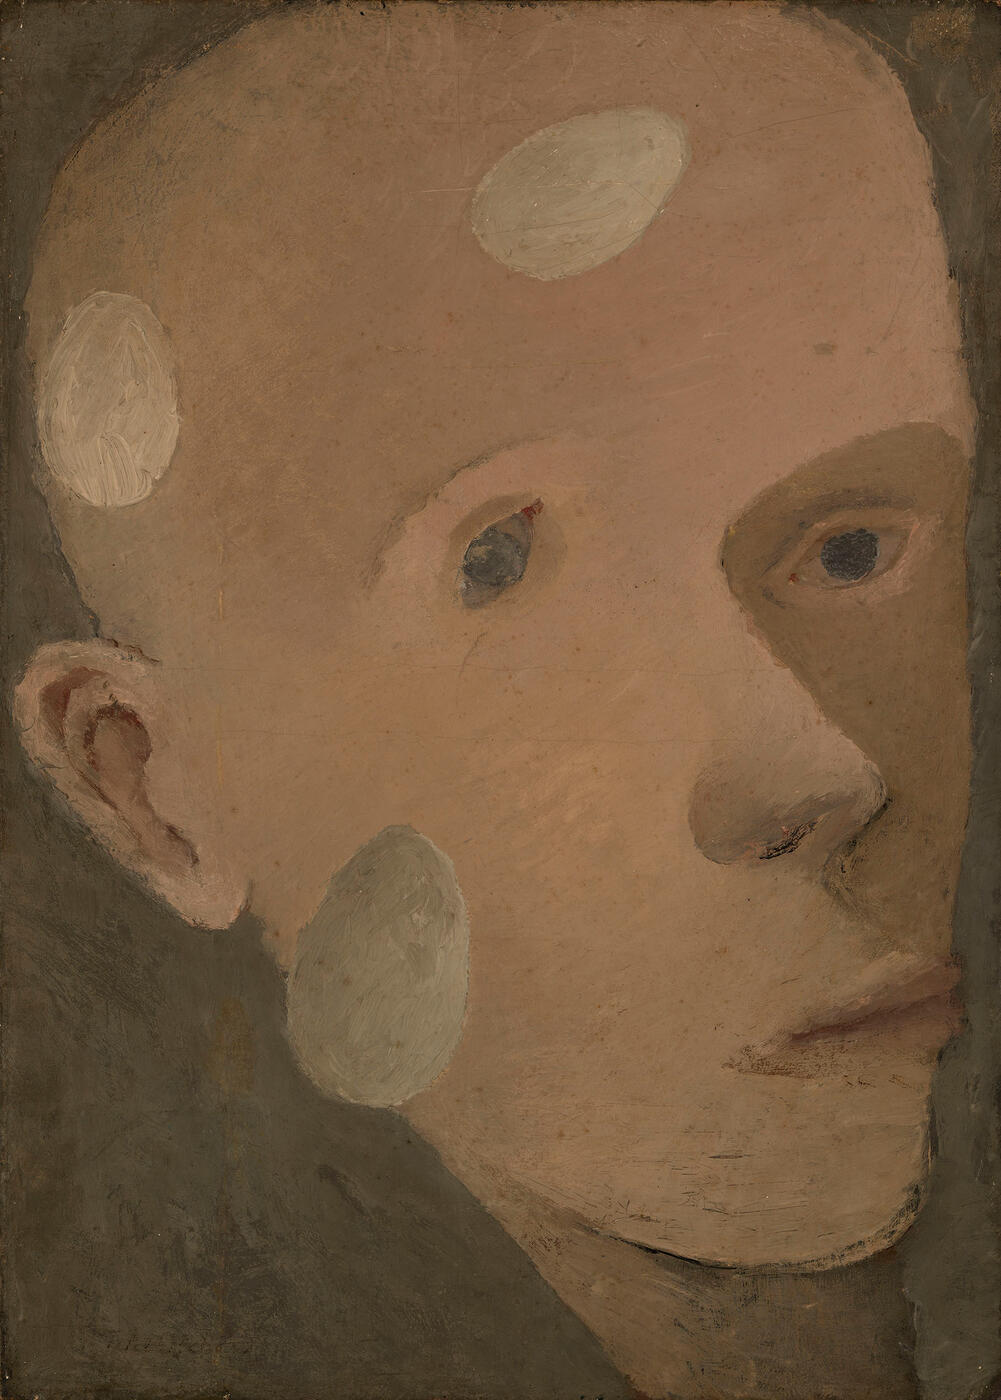 Head of a Young Boy with Floating Eggs